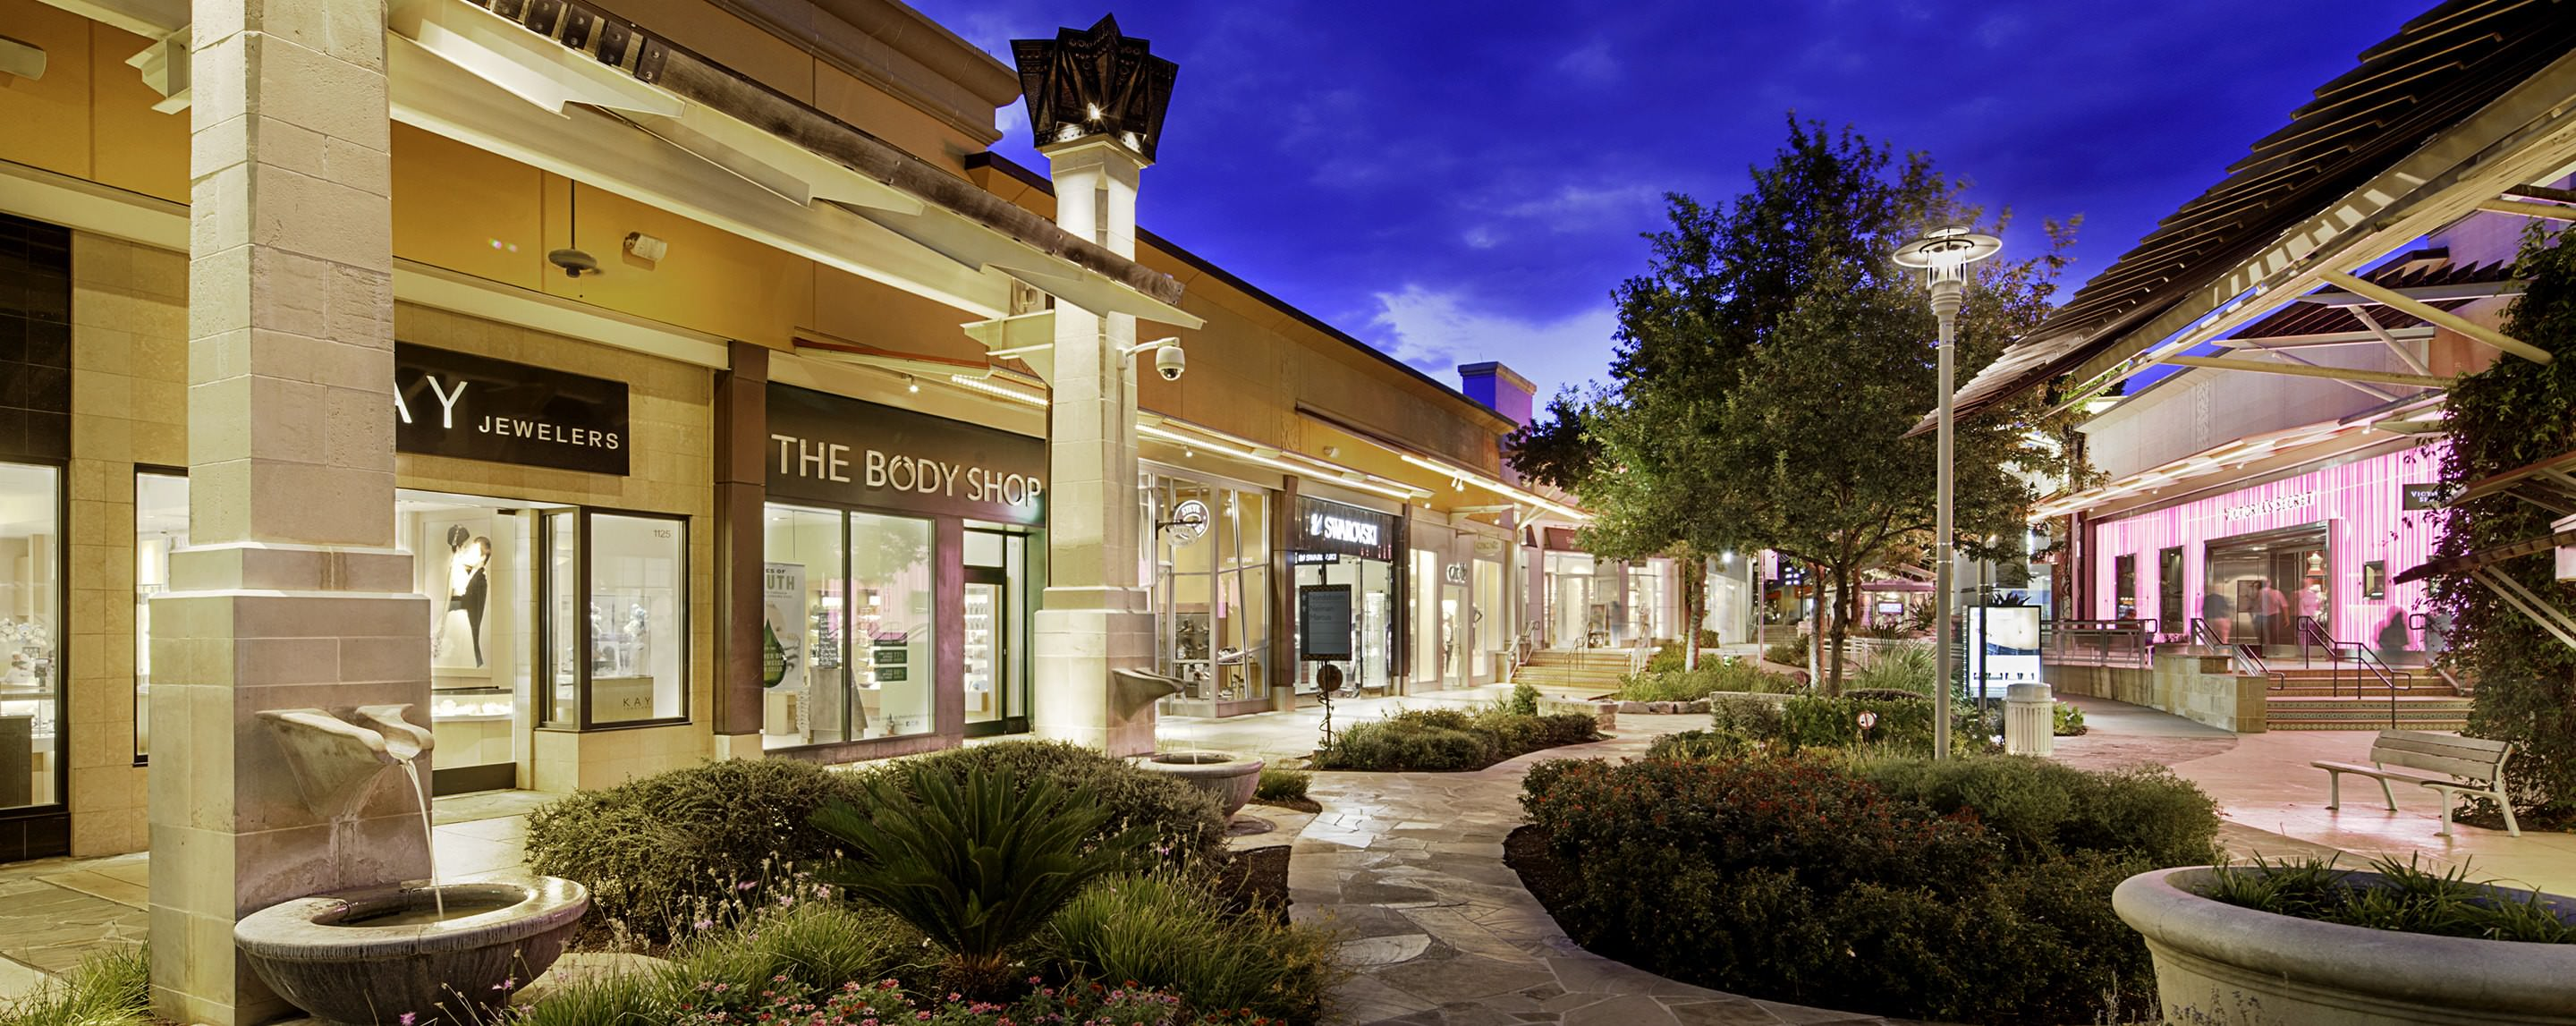 ... Storefronts At The Shops At La Cantera Light Up The Surrounding Area  And Lush Landscaping.